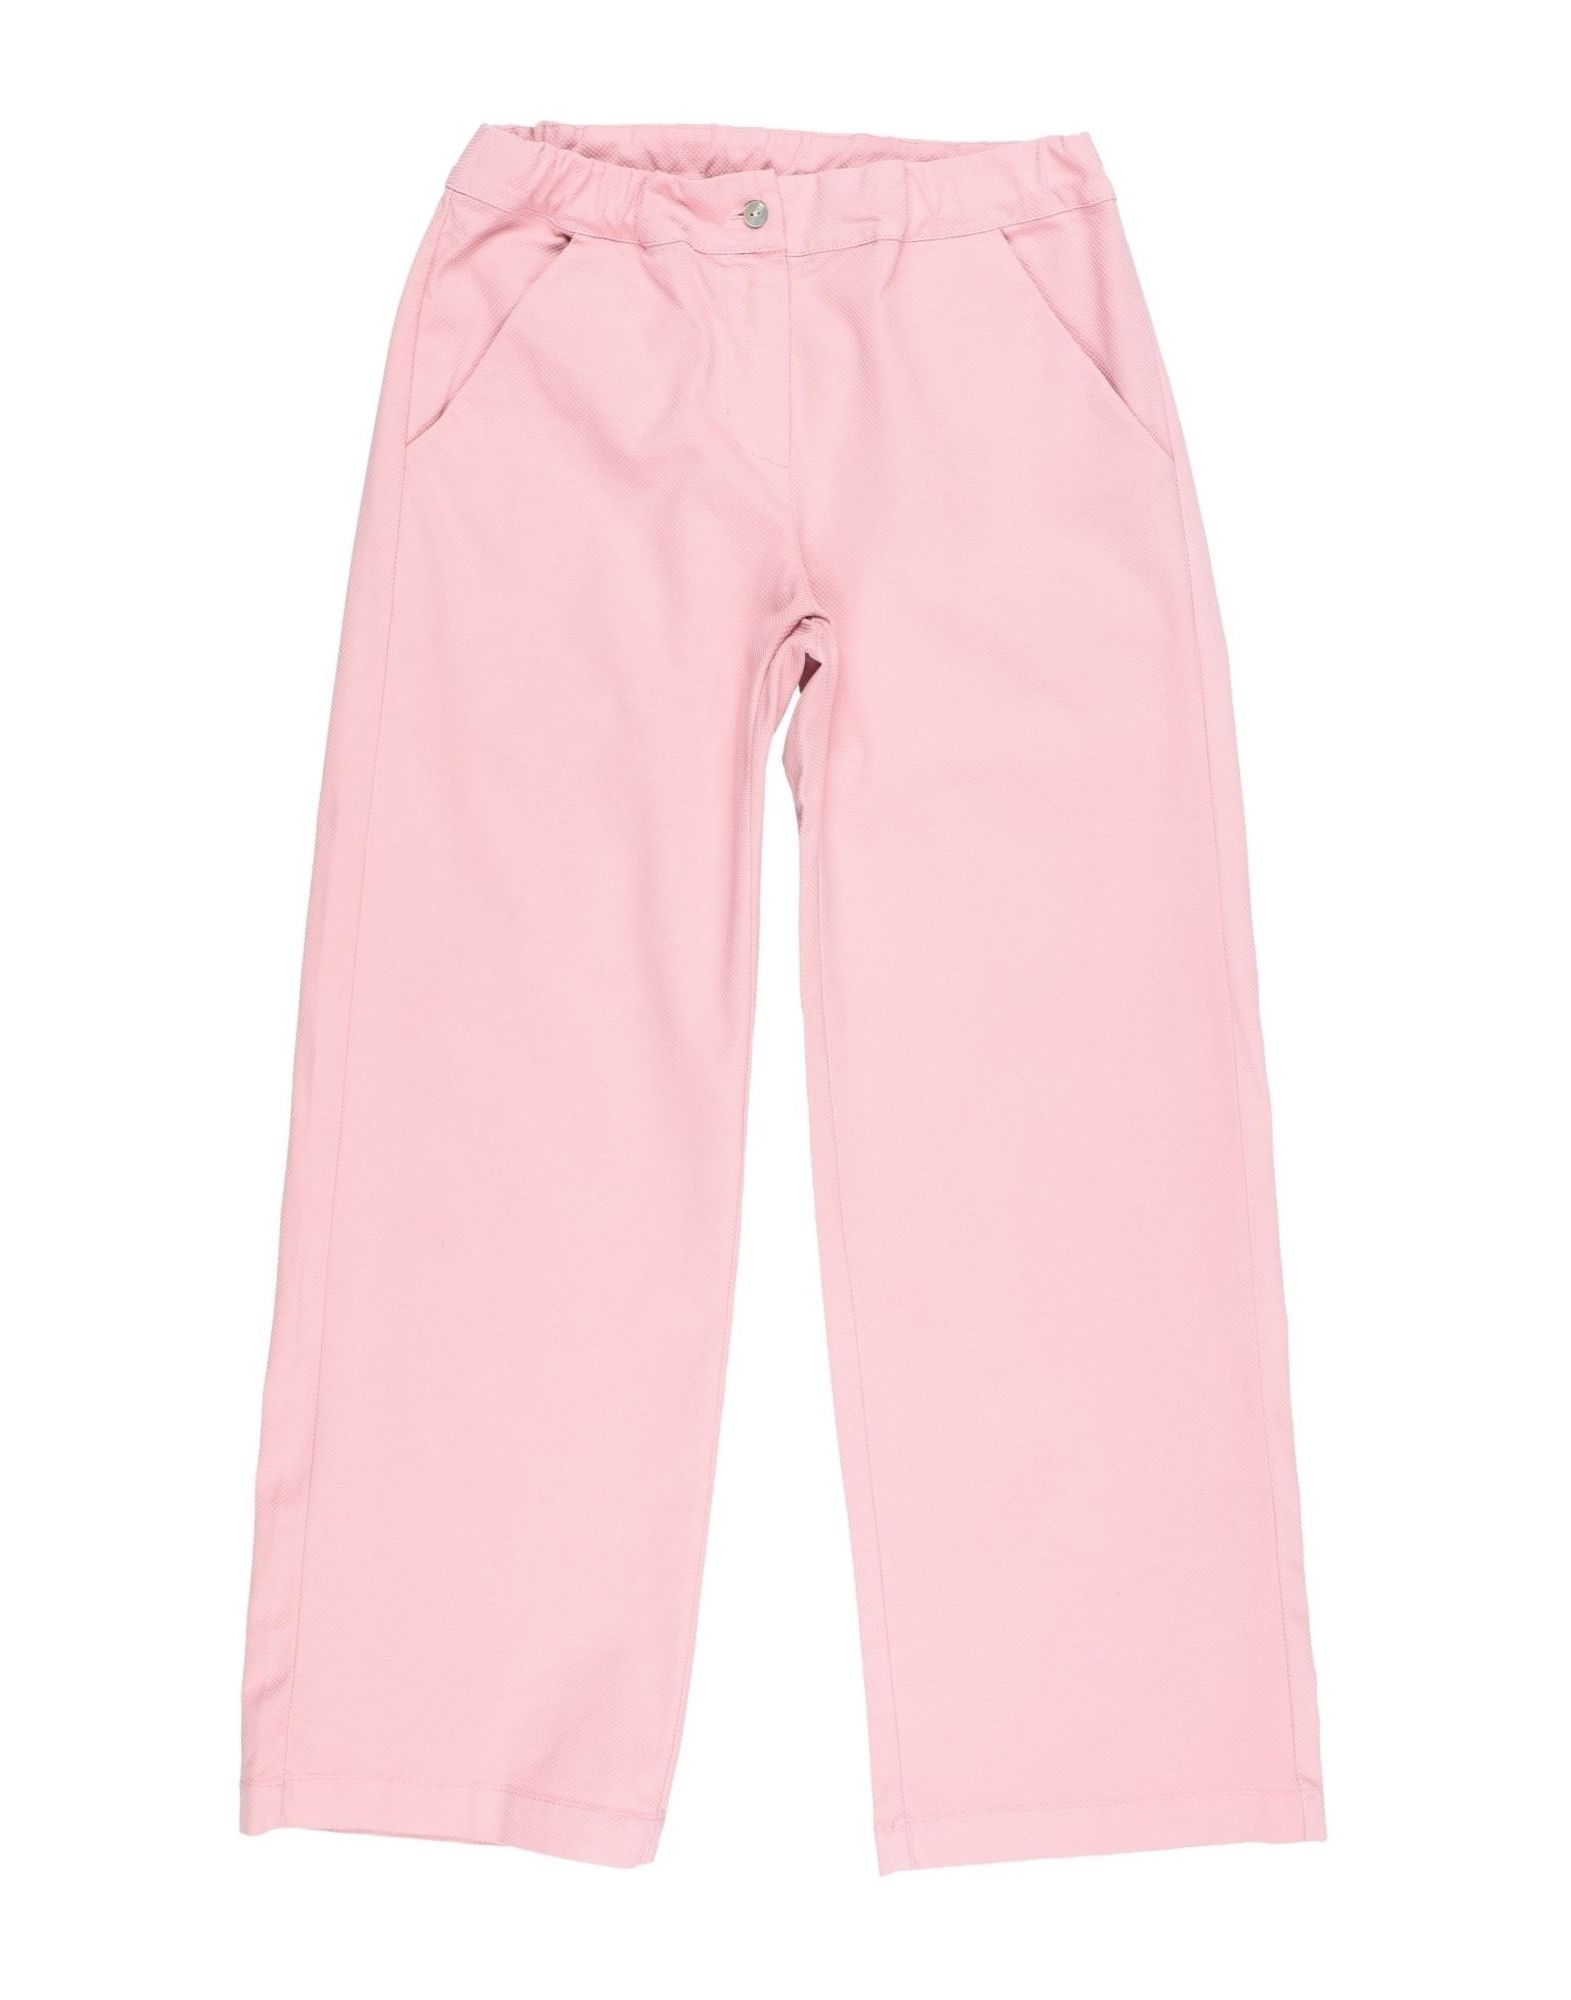 Essence Kids' Casual Pants In Pink